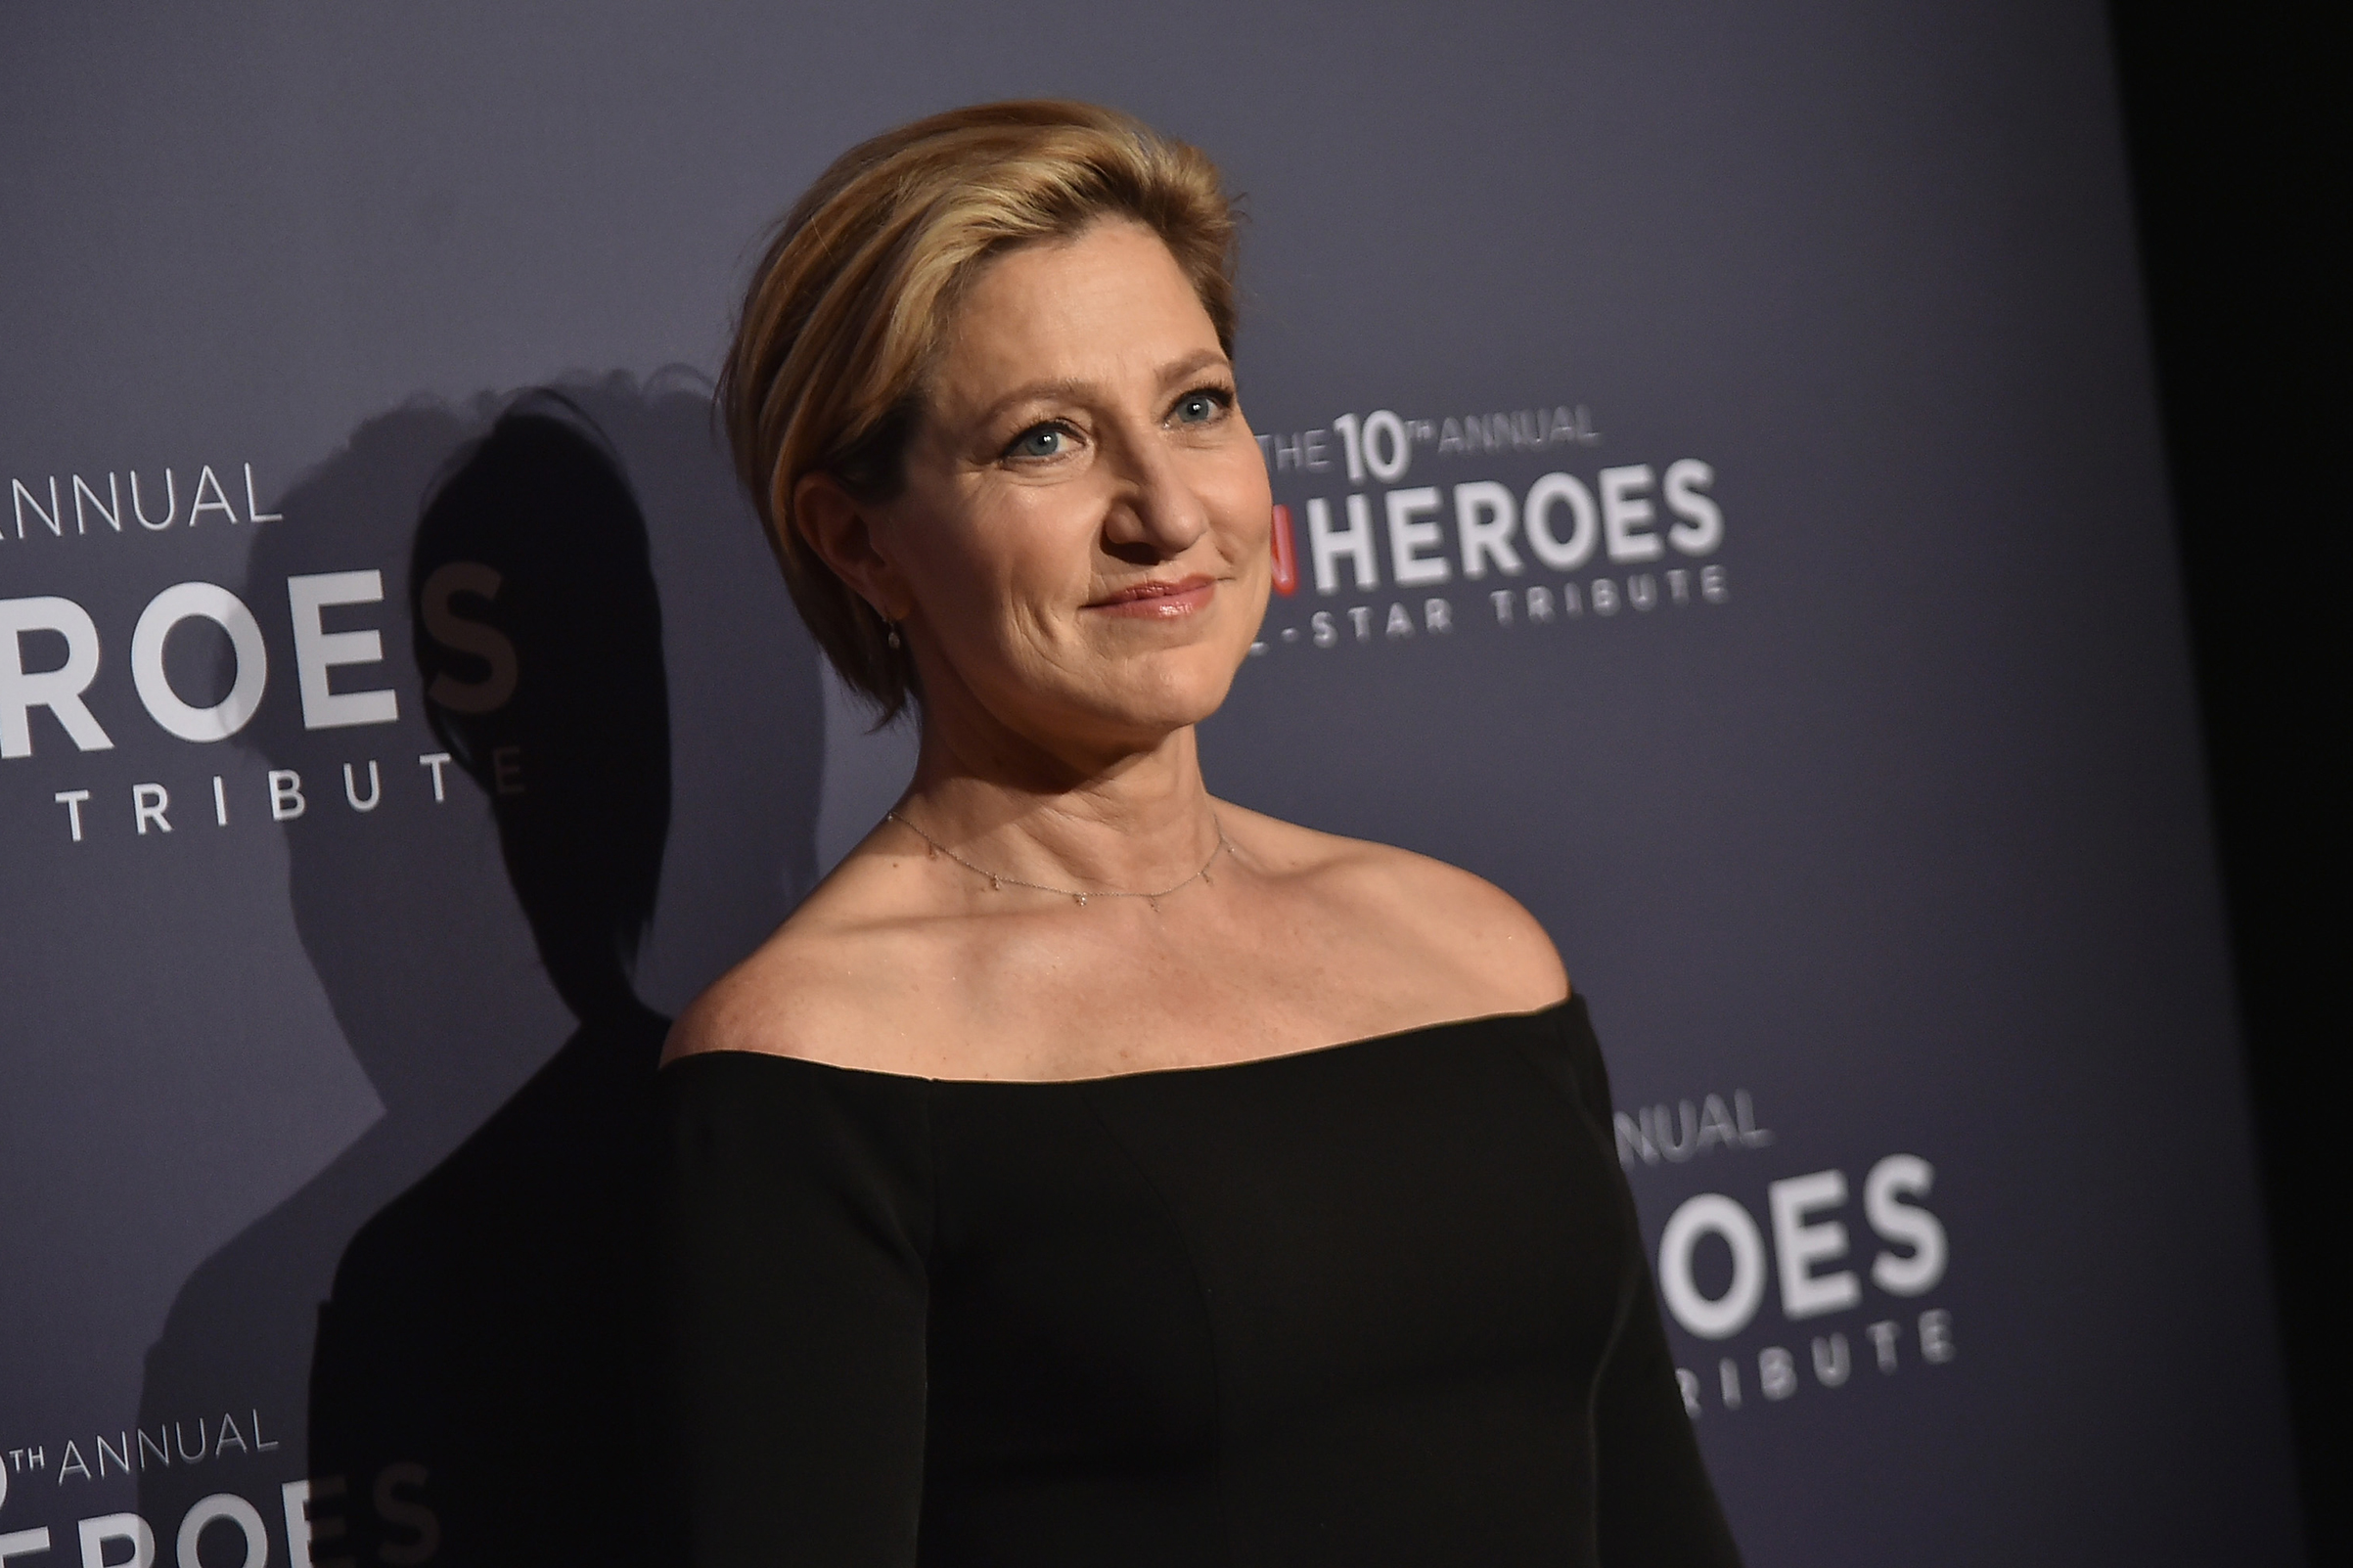 Edie Falco attends CNN Heroes Gala 2016 at the American Museum of Natural History on Dec. 11, 2016 in New York.